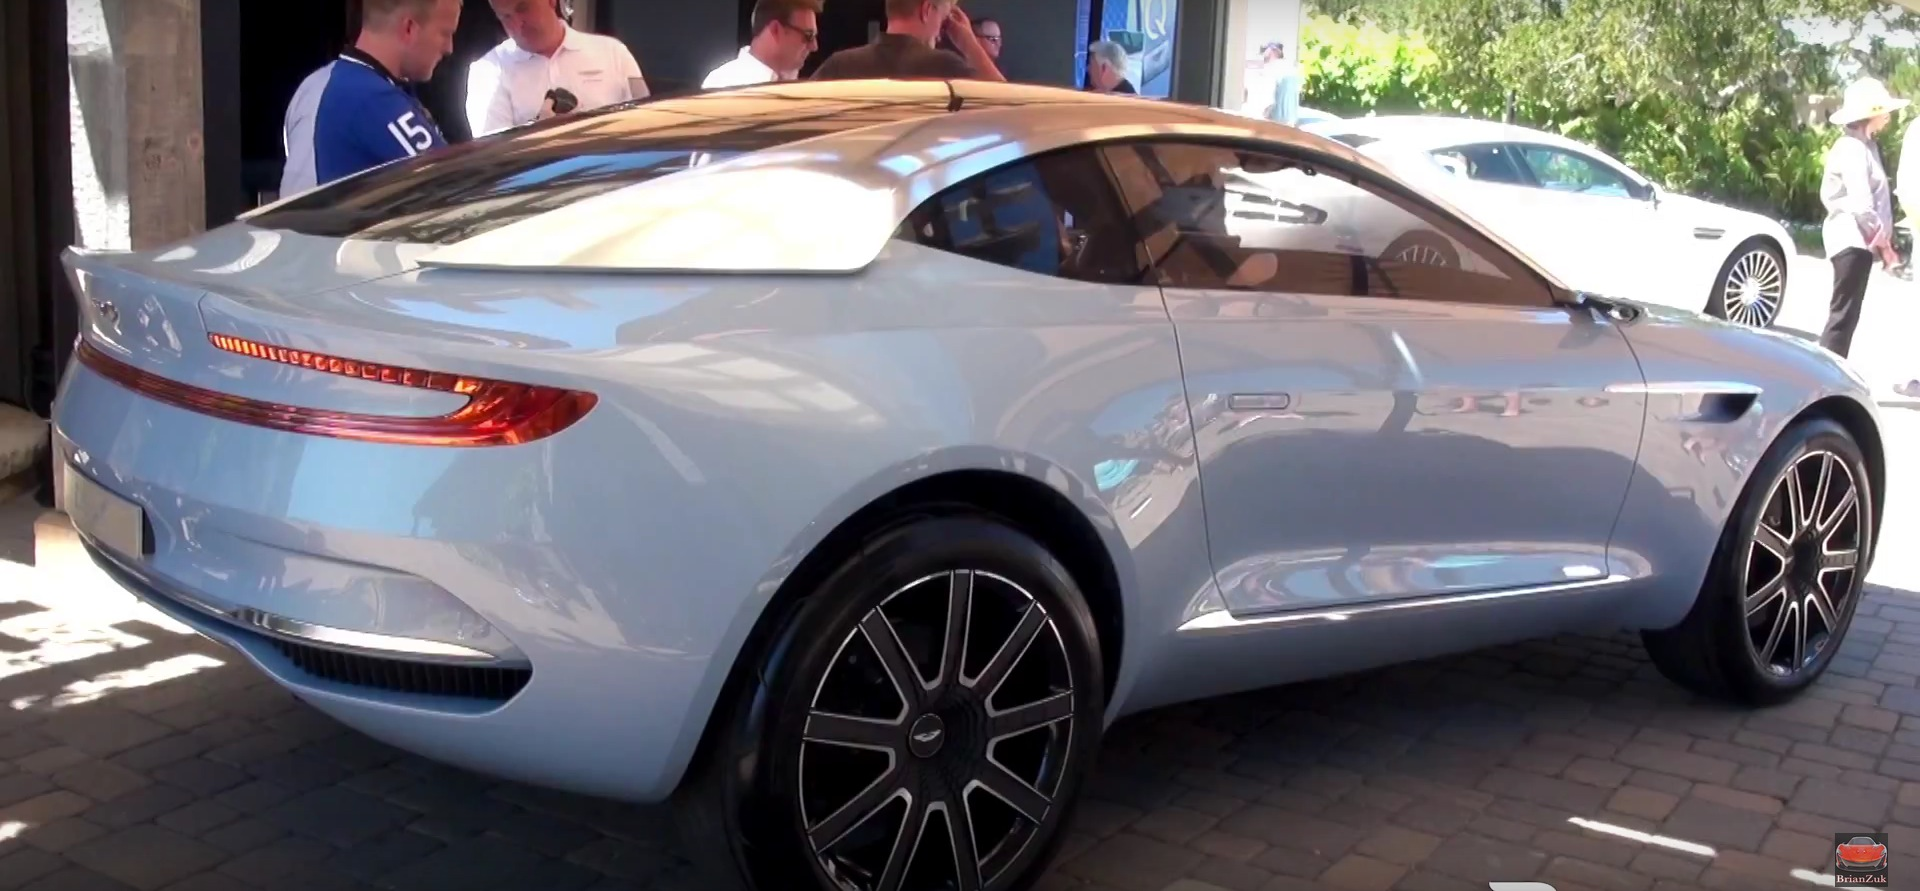 aston martin dbx concept makes us debut at pebble beach in new color autoevolution. Black Bedroom Furniture Sets. Home Design Ideas